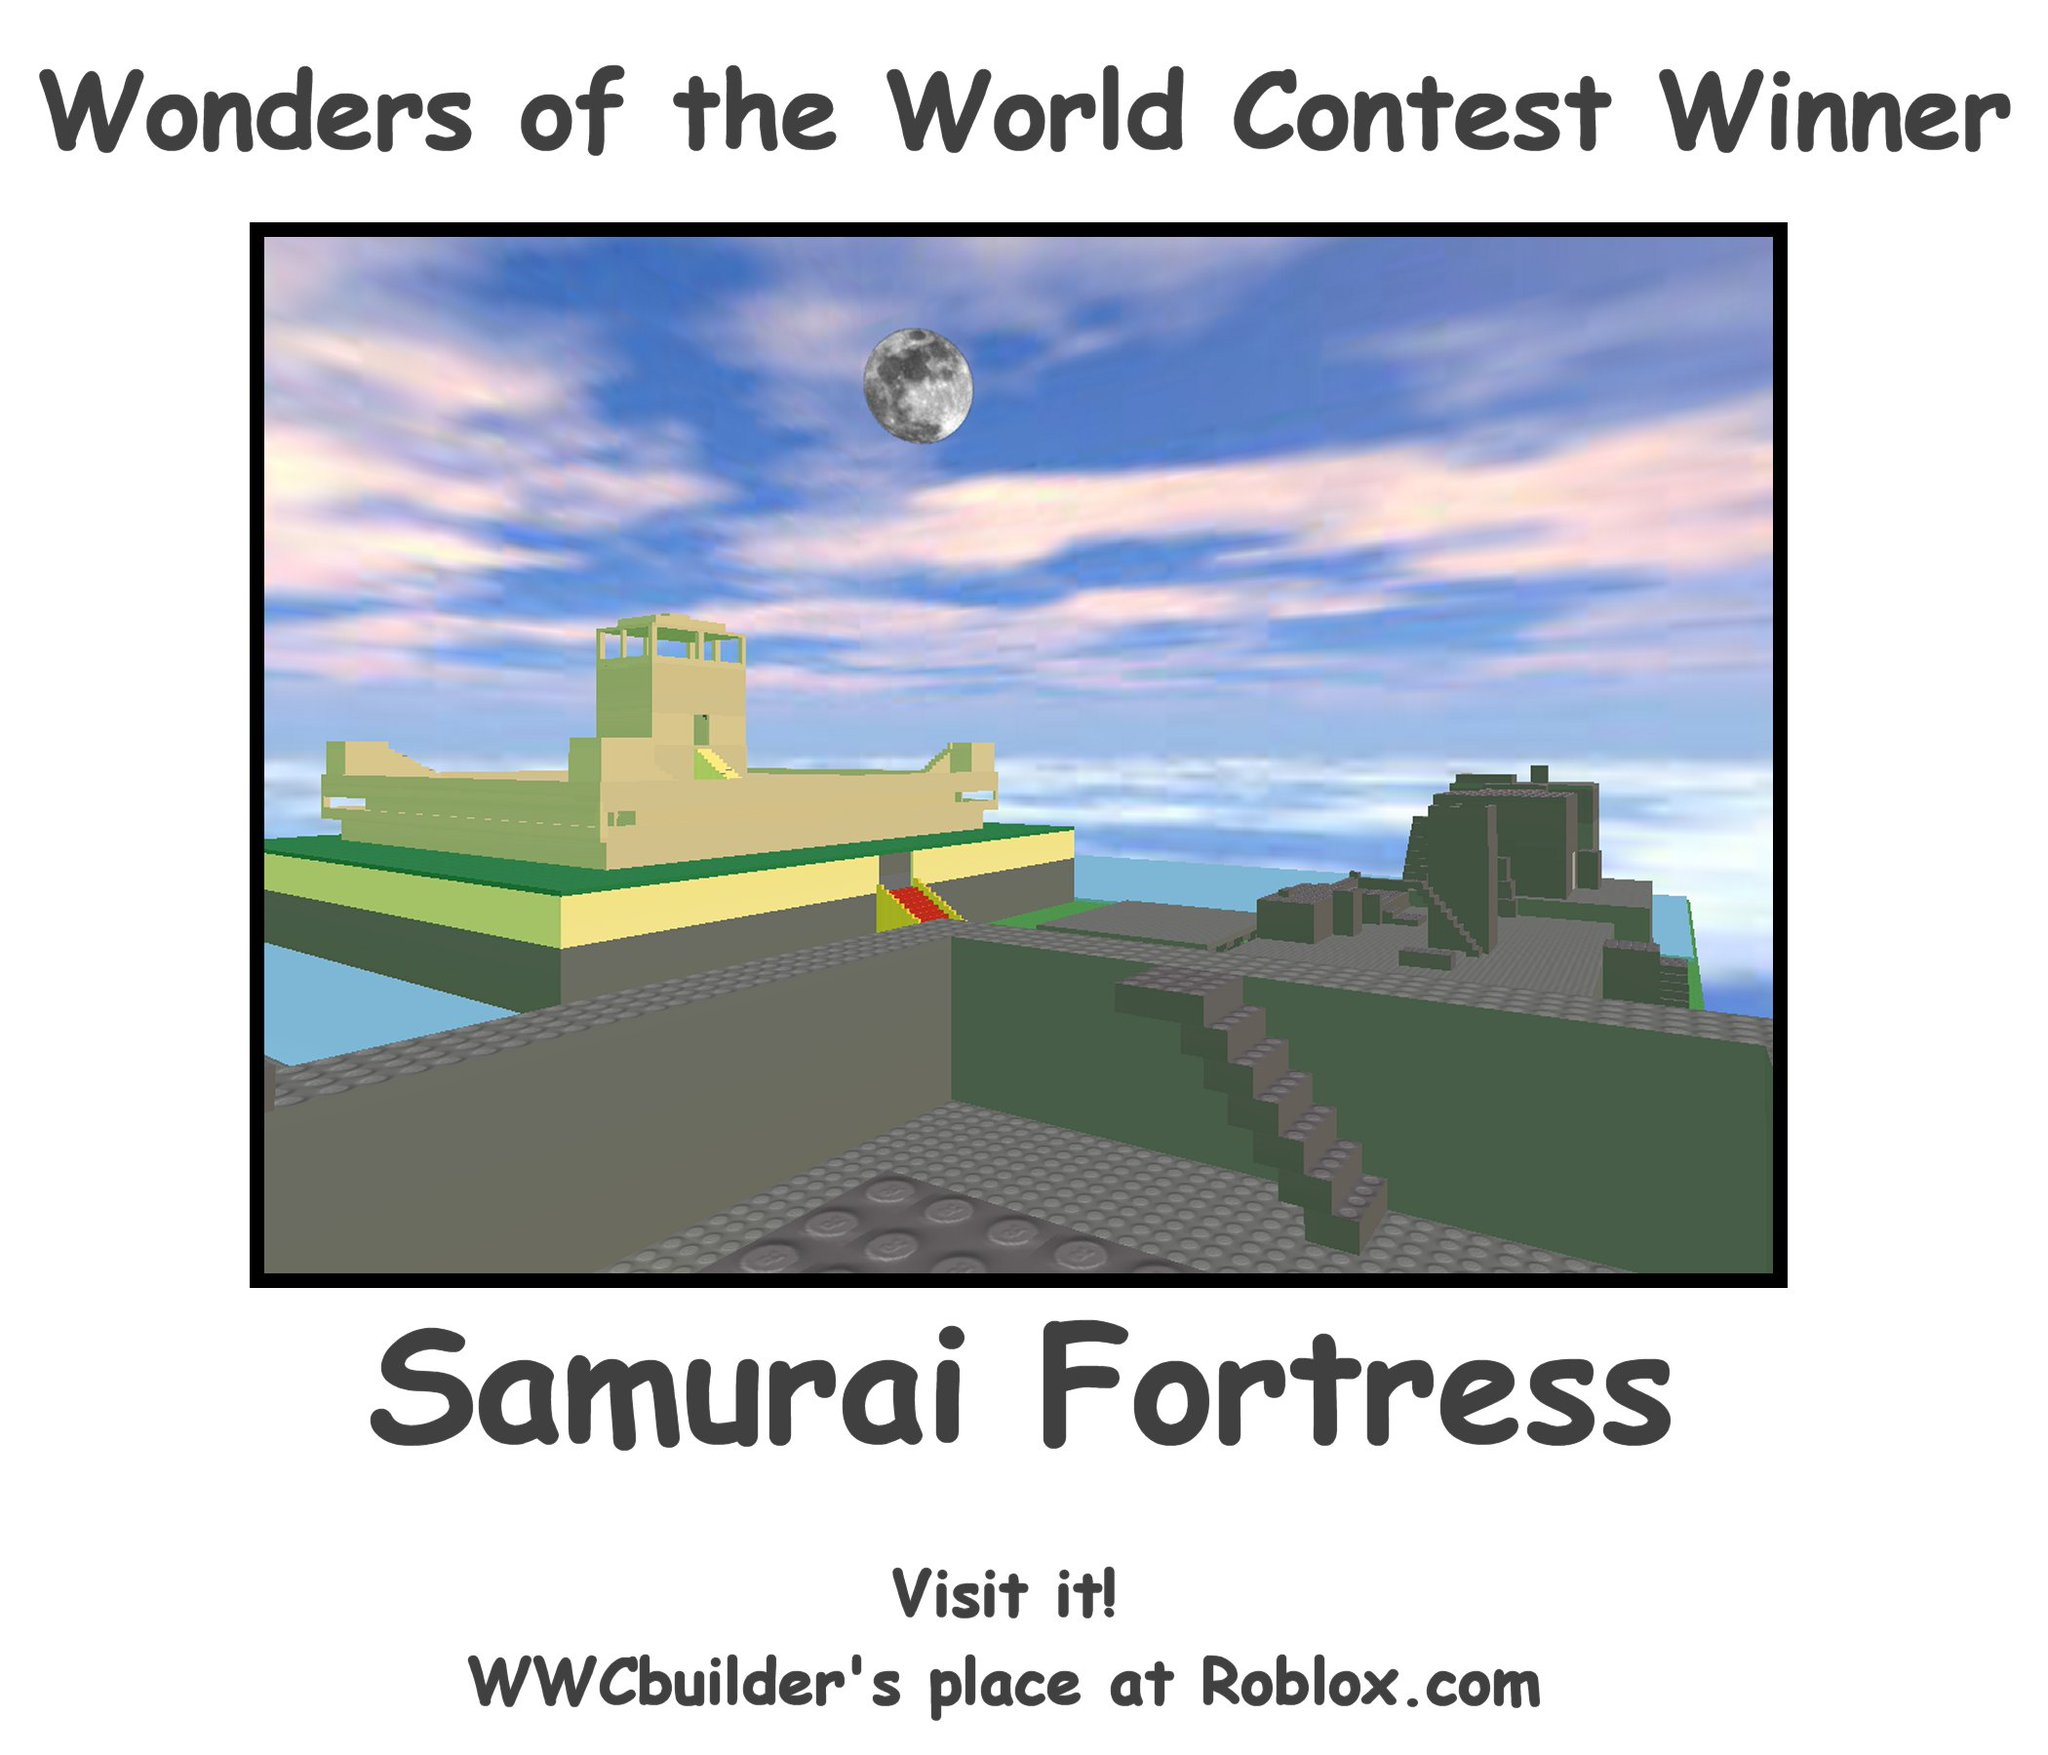 John Shedletsky And 3 154 054 Others On Twitter Old Roblox Contest Winners Screenshots From 2007 08ish Really Underline How Far The Visual Appeal Of The Platform Has Come I Think For This One We